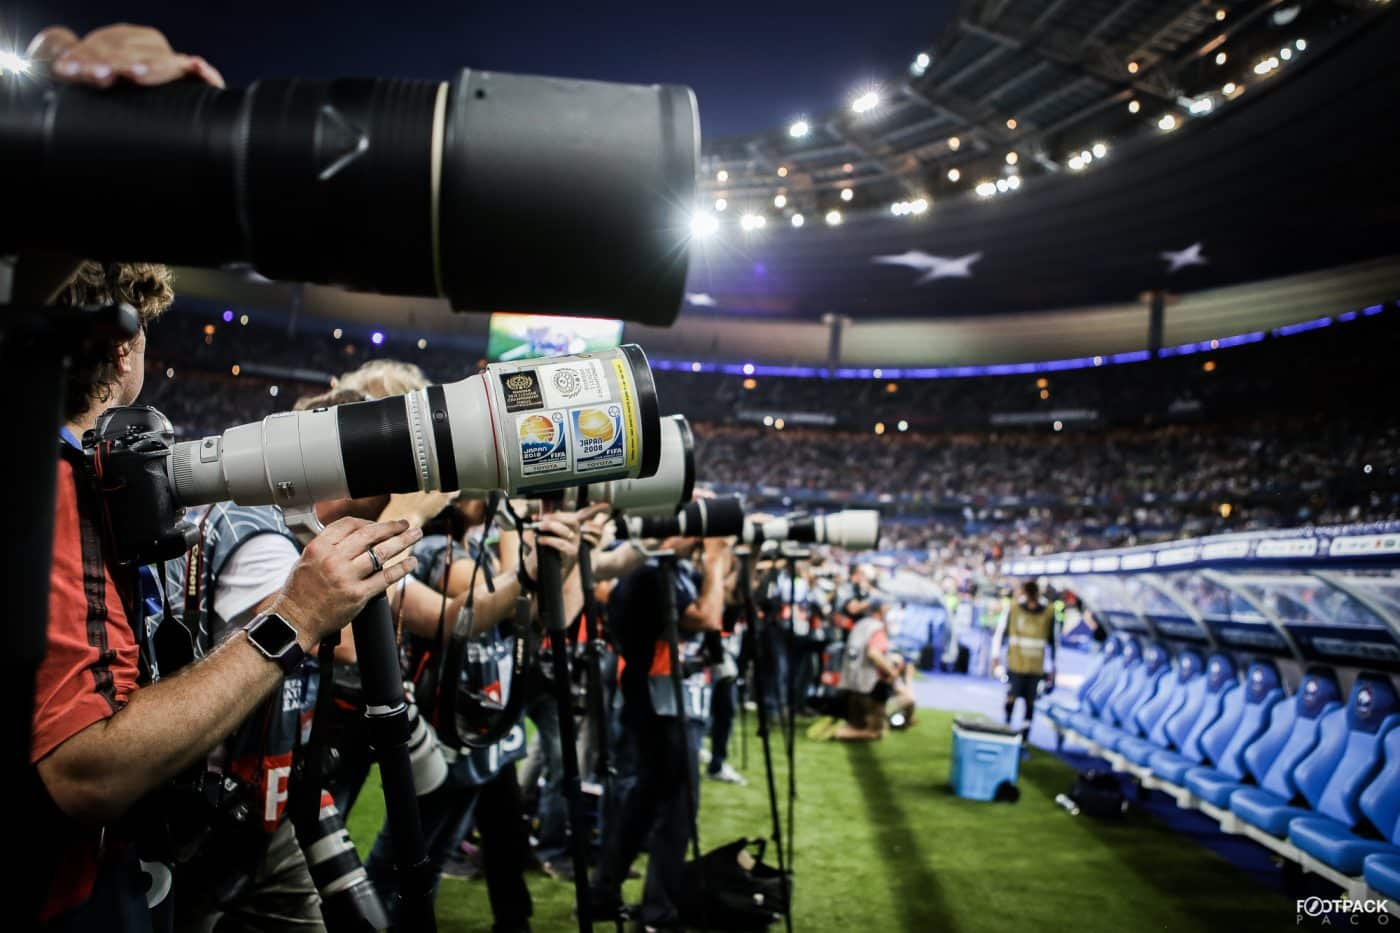 au-stade-france-pays-bas-photogrape